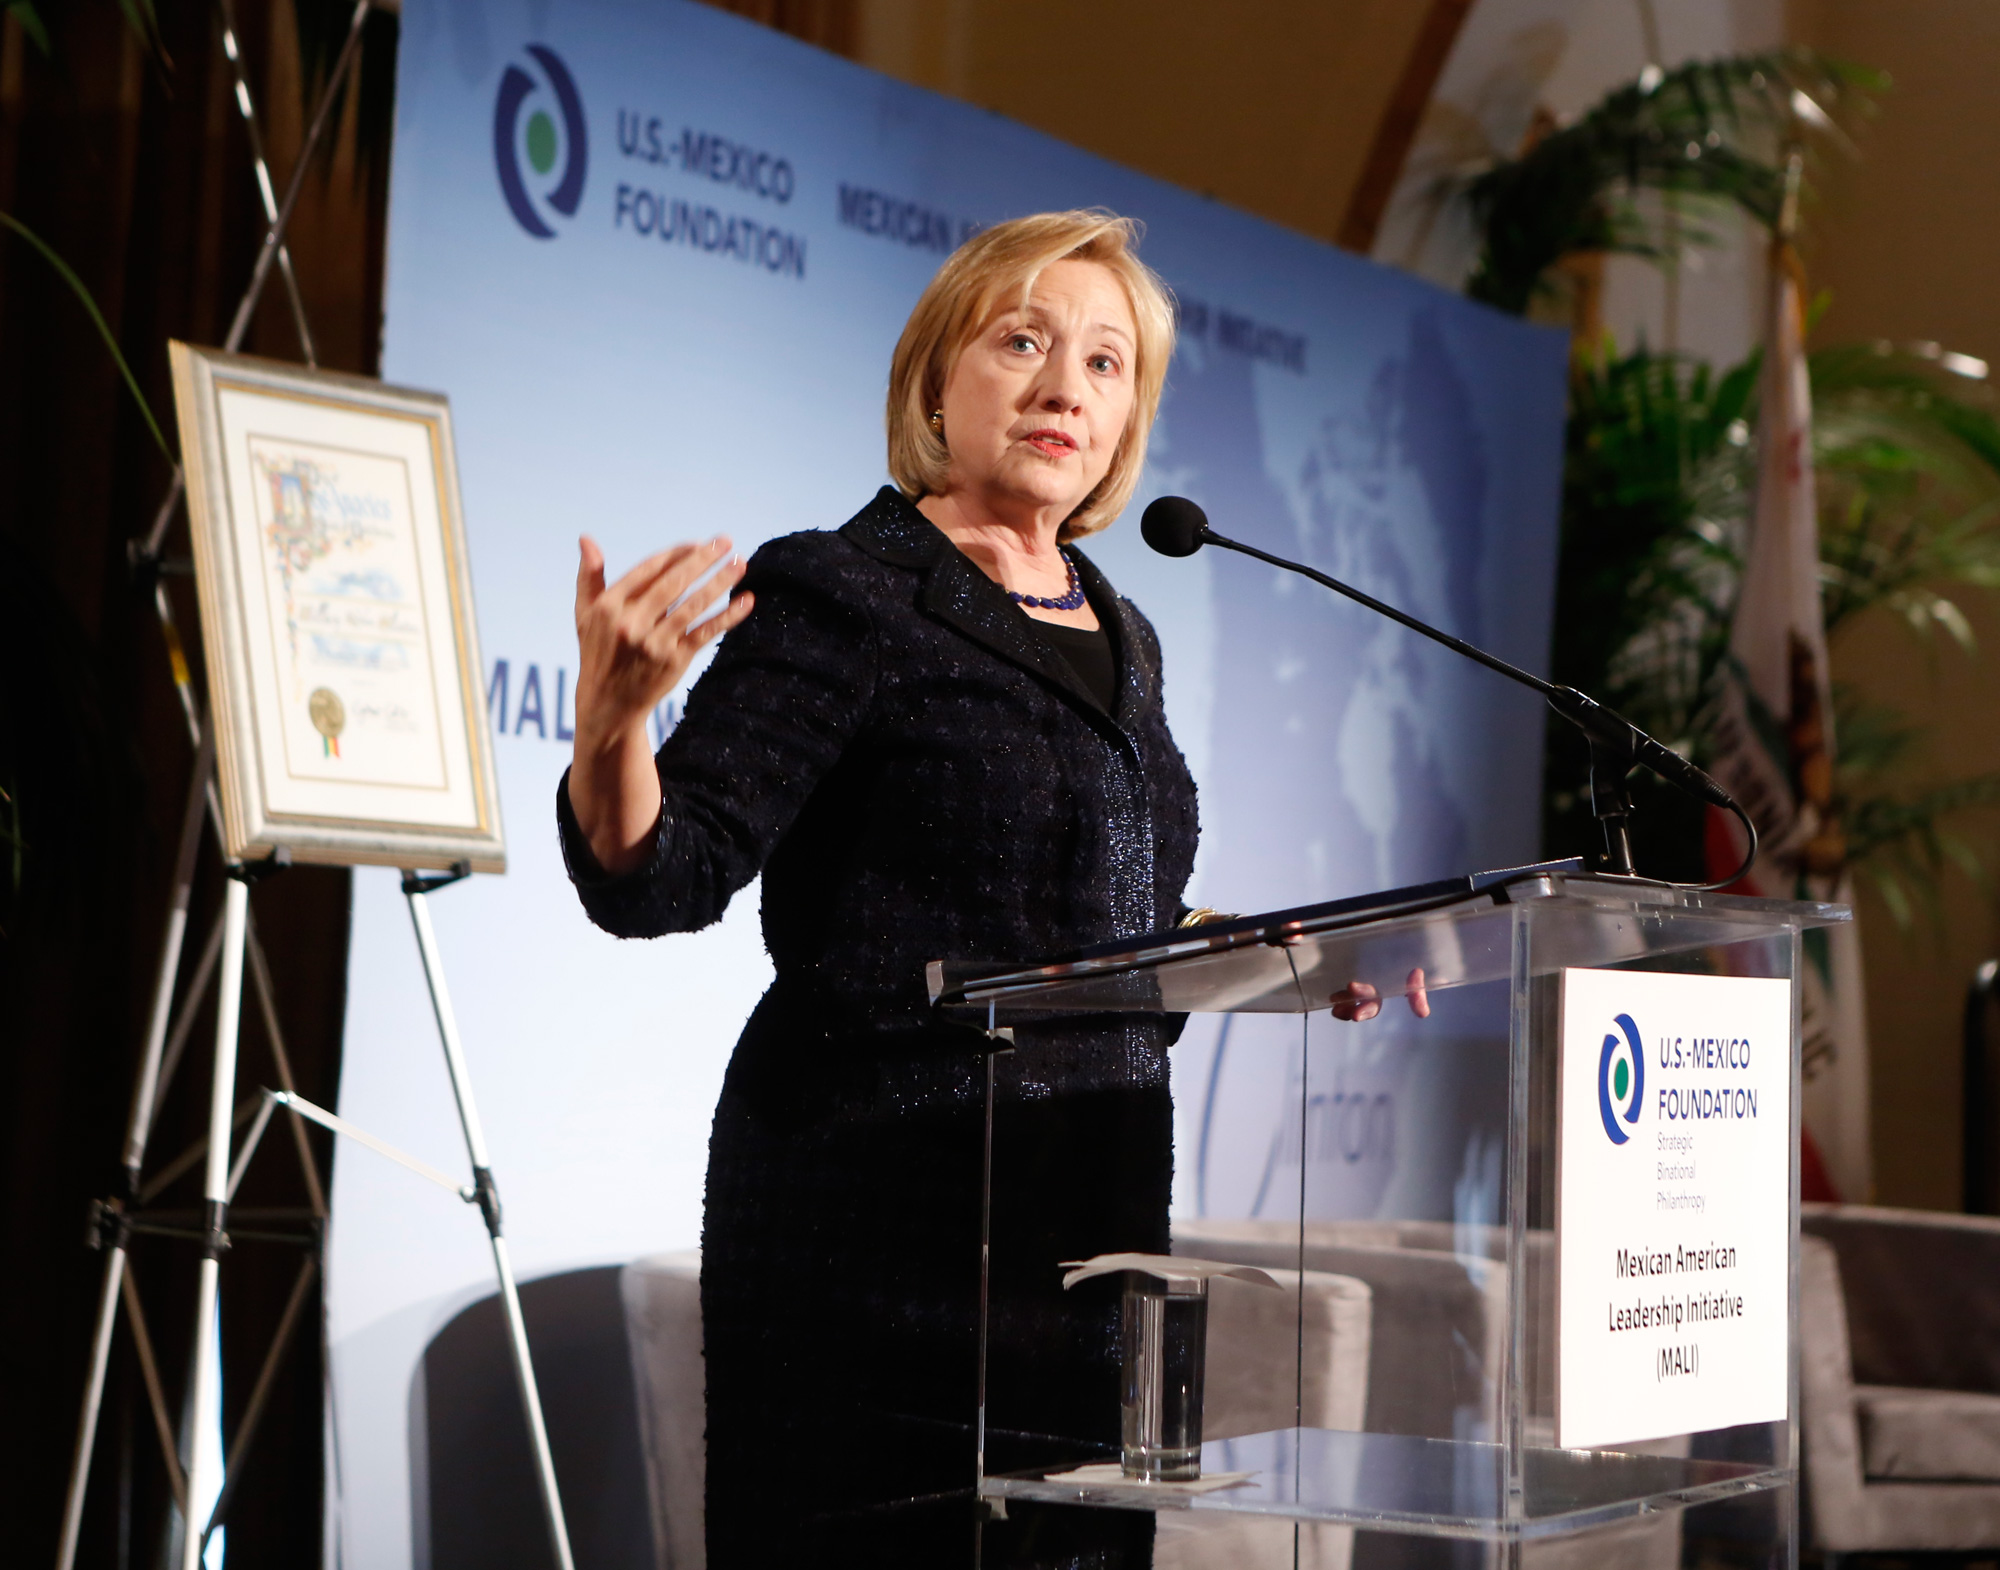 Hillary Clinton honored by US-Mexico Foundation - USC News